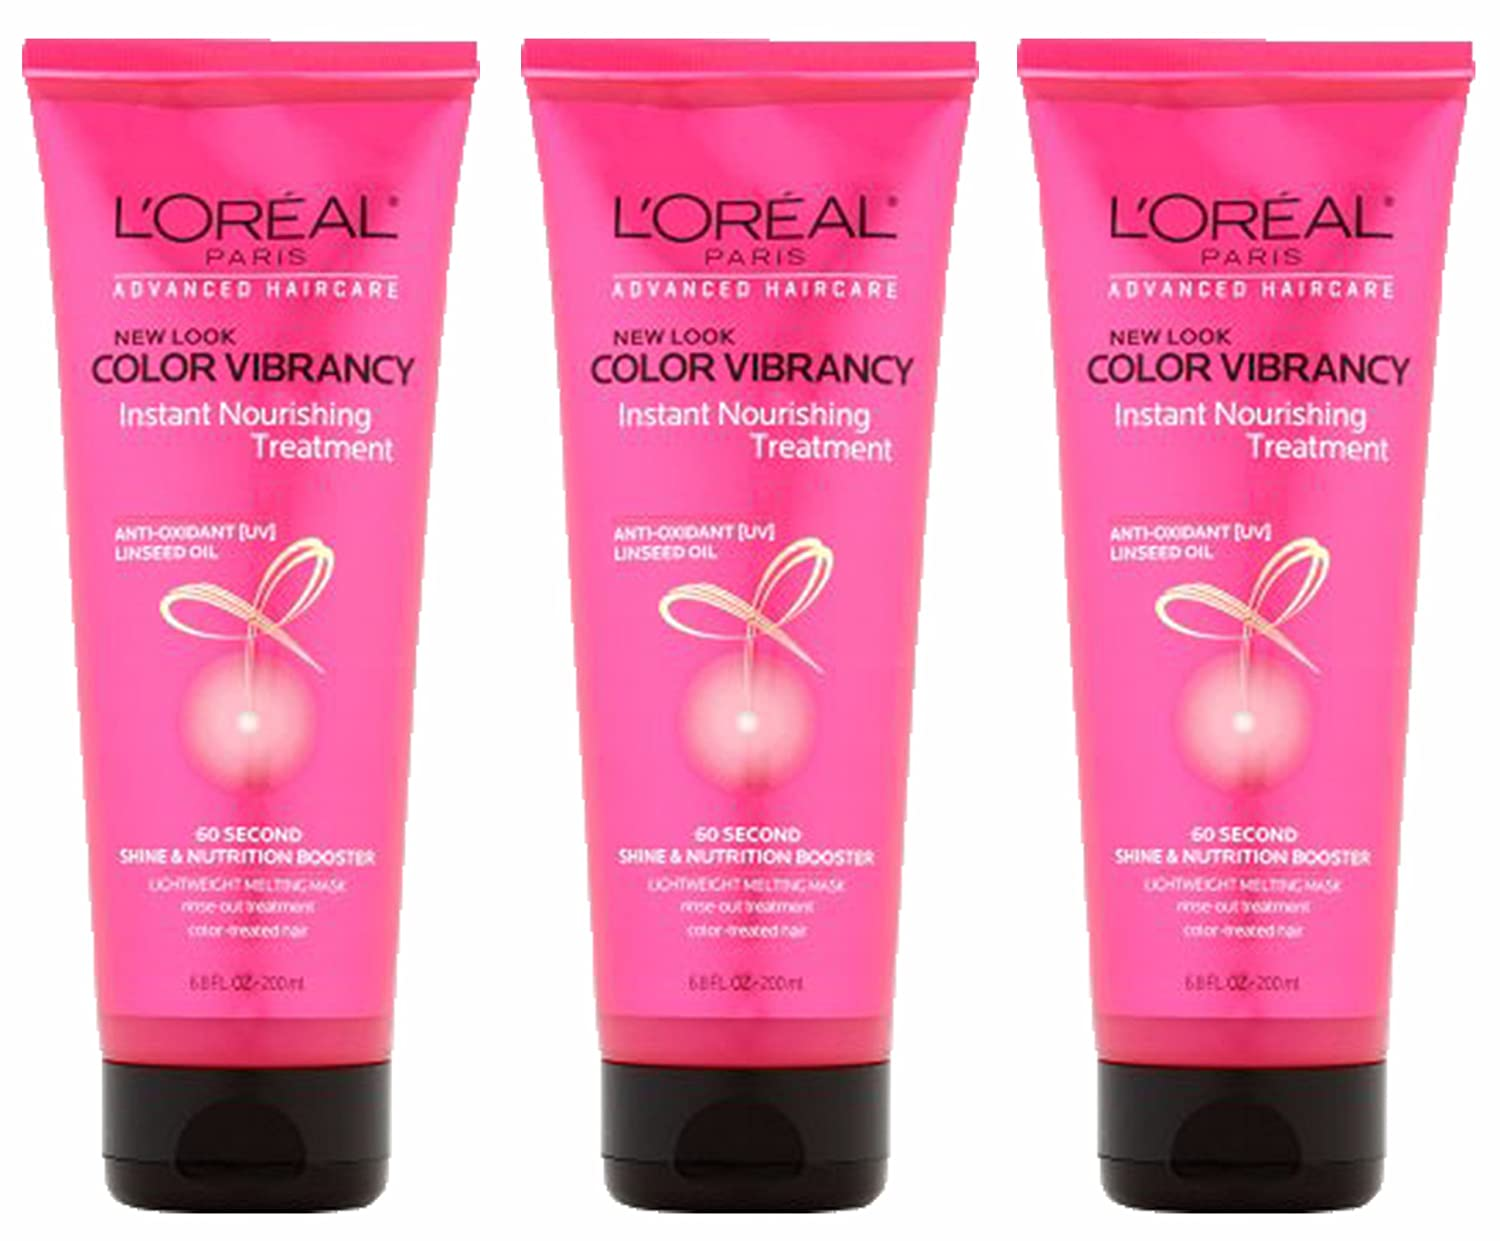 L'Oreal Paris Advanced Haircare Color Vibrancy Instant Shock Treatment 6.8 Ounce, (Pack of 3)